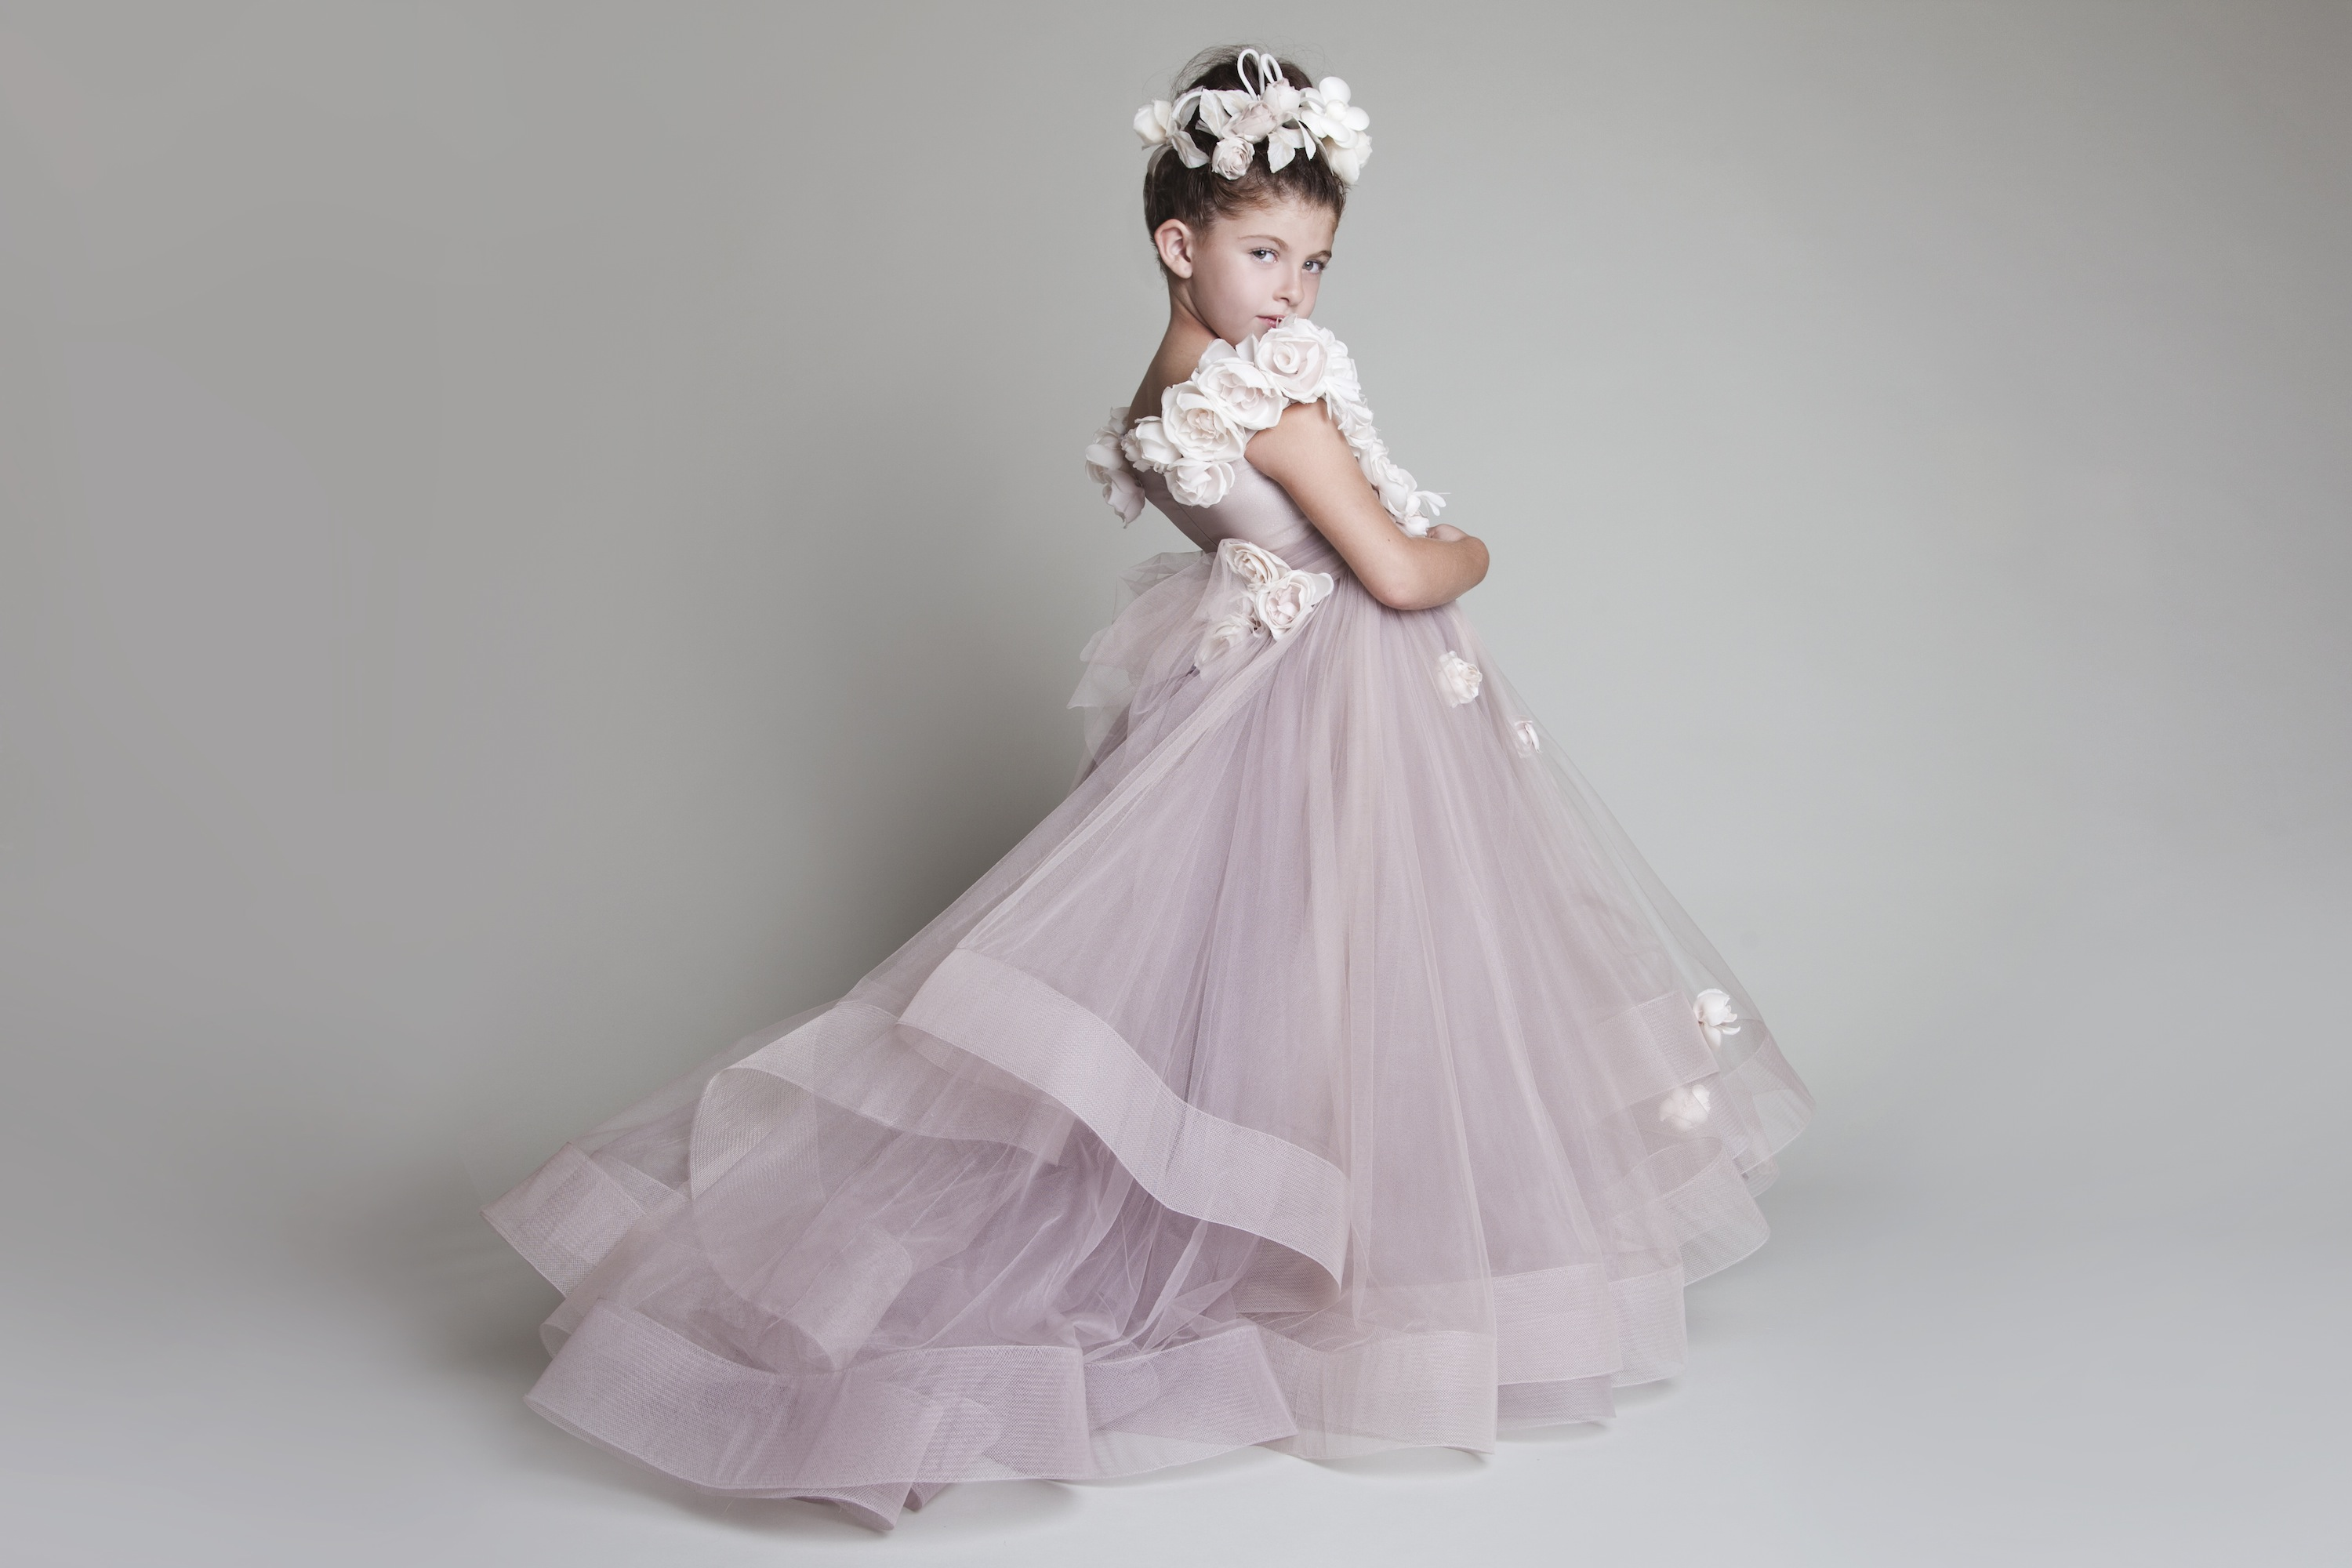 Flower girl dresses boho couture princess for Little flower girl wedding dresses